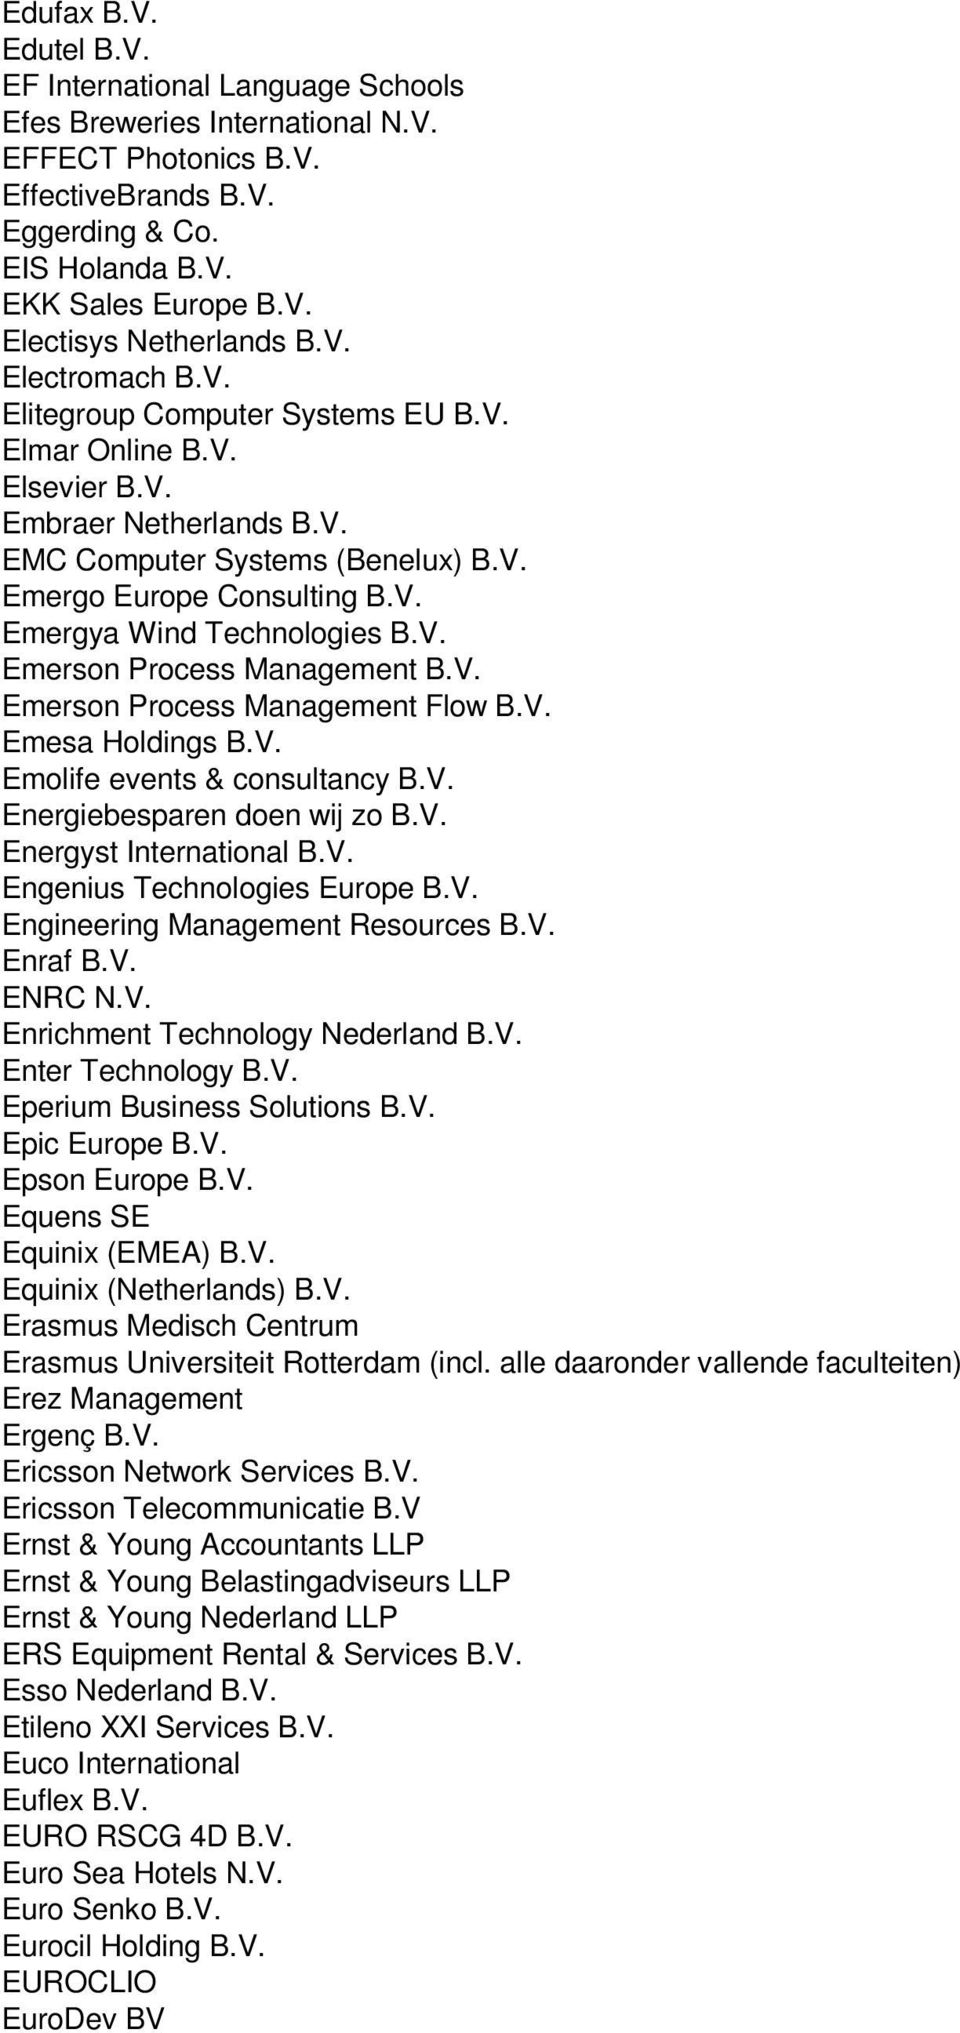 V. Emerson Process Management B.V. Emerson Process Management Flow B.V. Emesa Holdings B.V. Emolife events & consultancy B.V. Energiebesparen doen wij zo B.V. Energyst International B.V. Engenius Technologies Europe B.